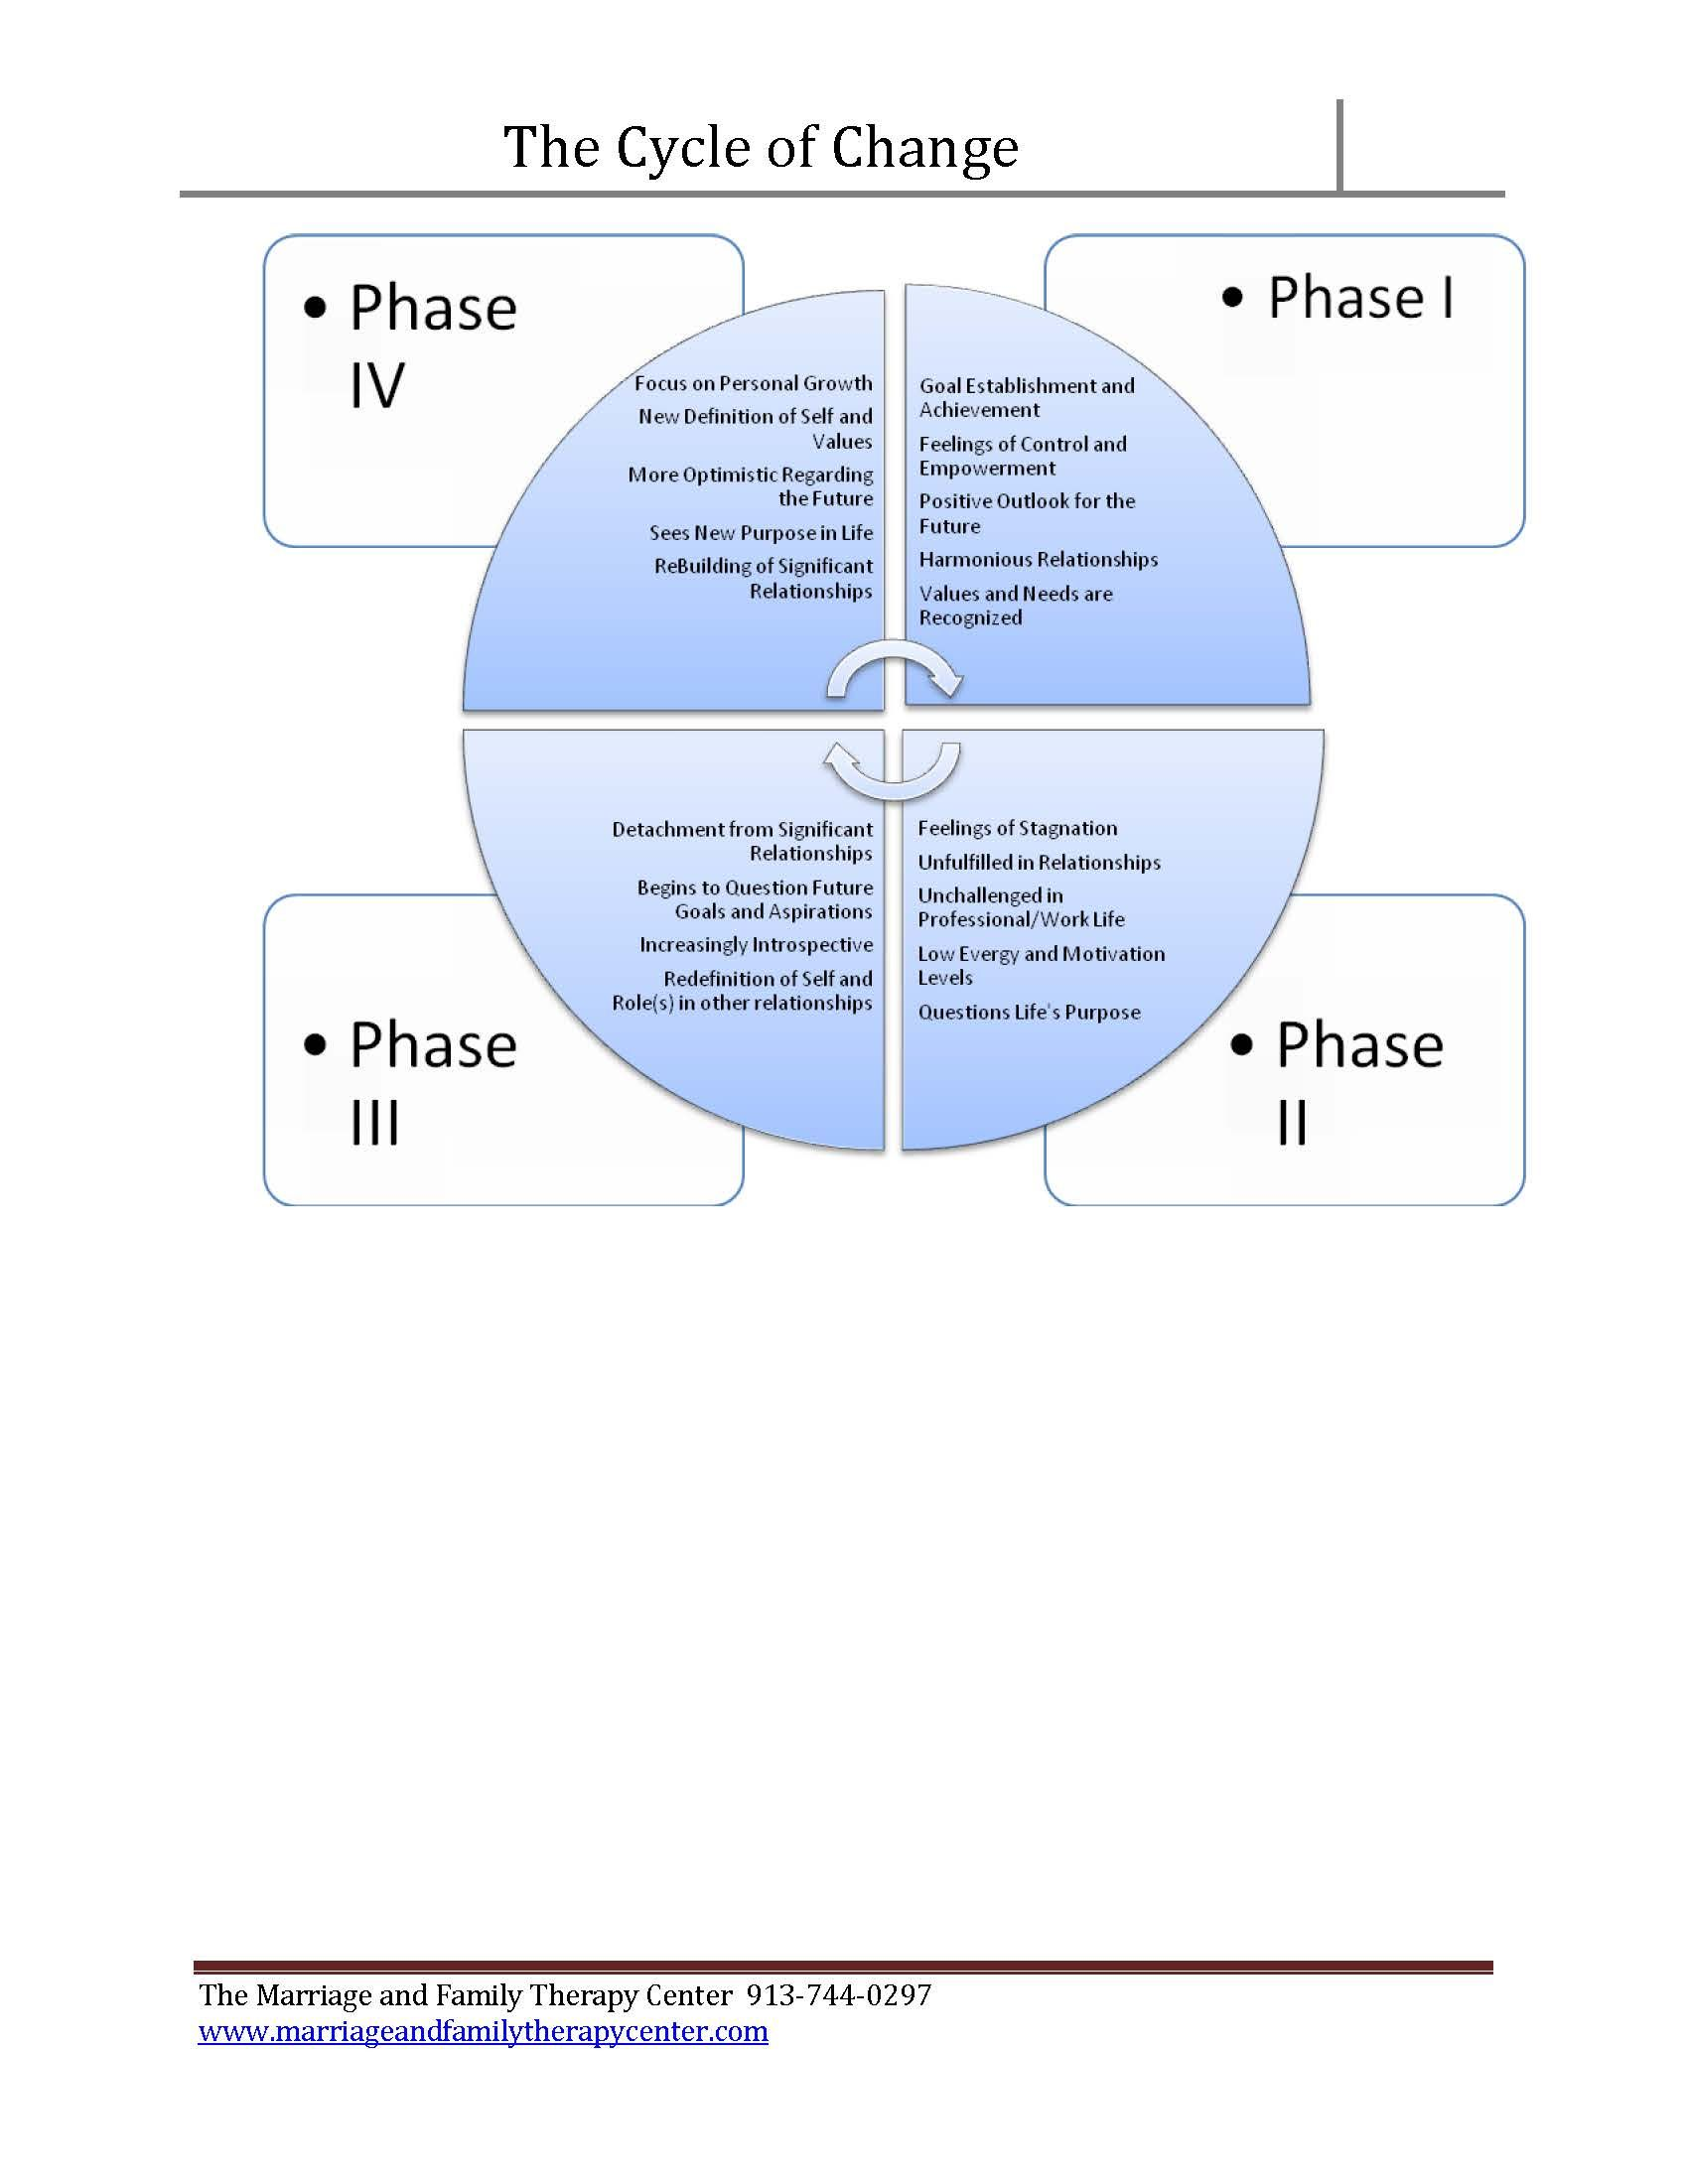 The Cycle Of Change Marriage And Family Therapy Center